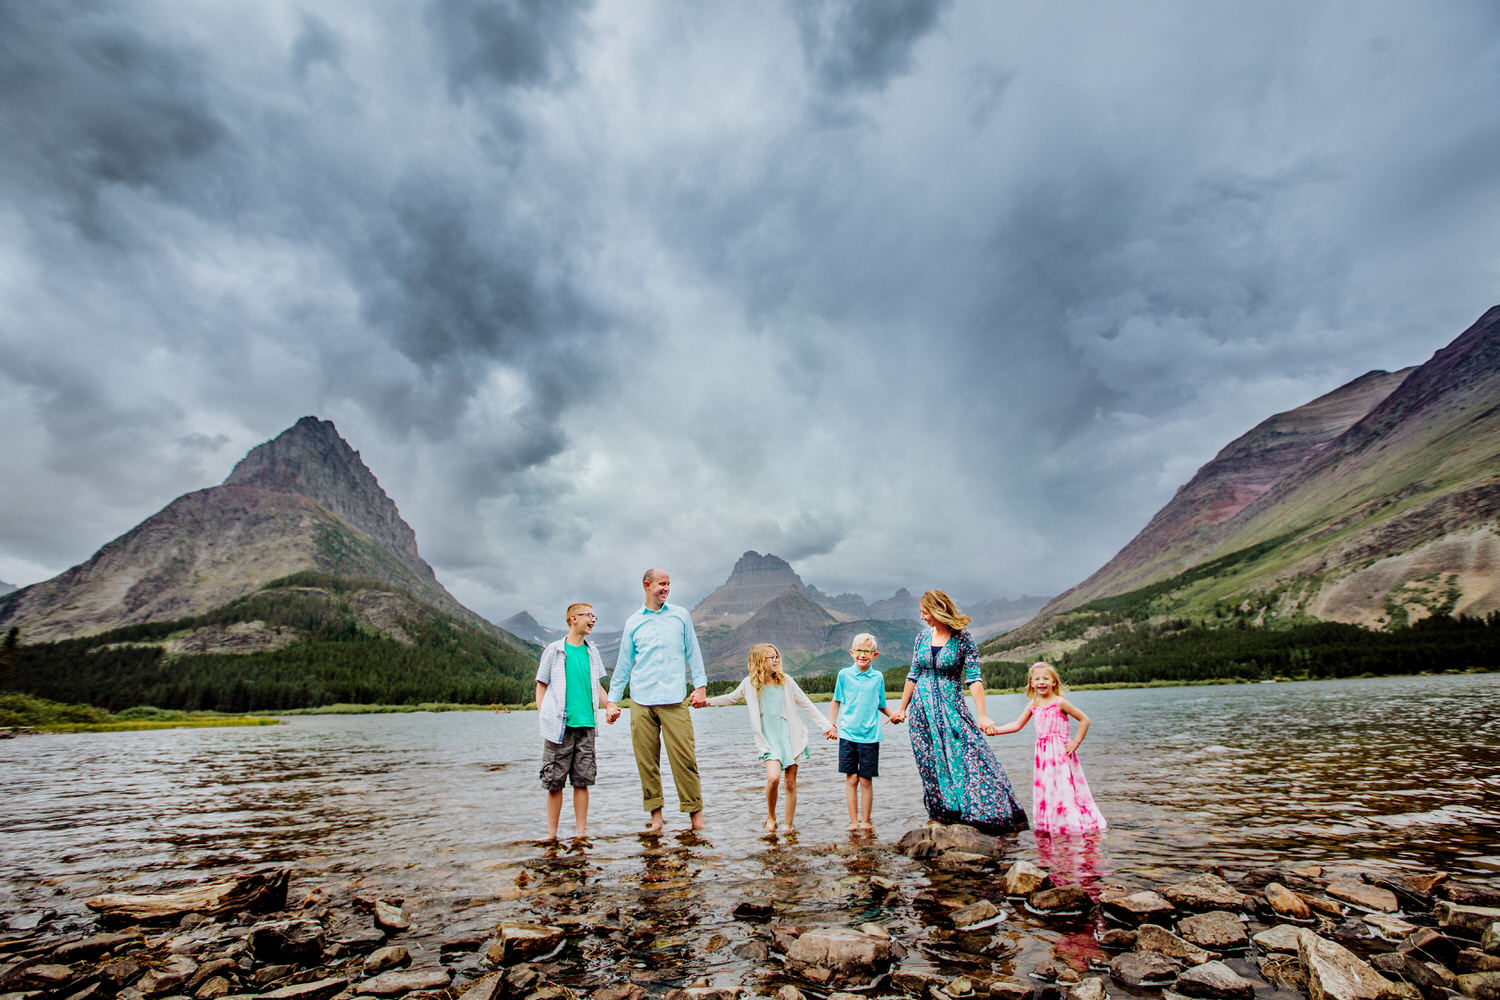 The Crist family from Great Falls Montana traveling to get their family pictures done.